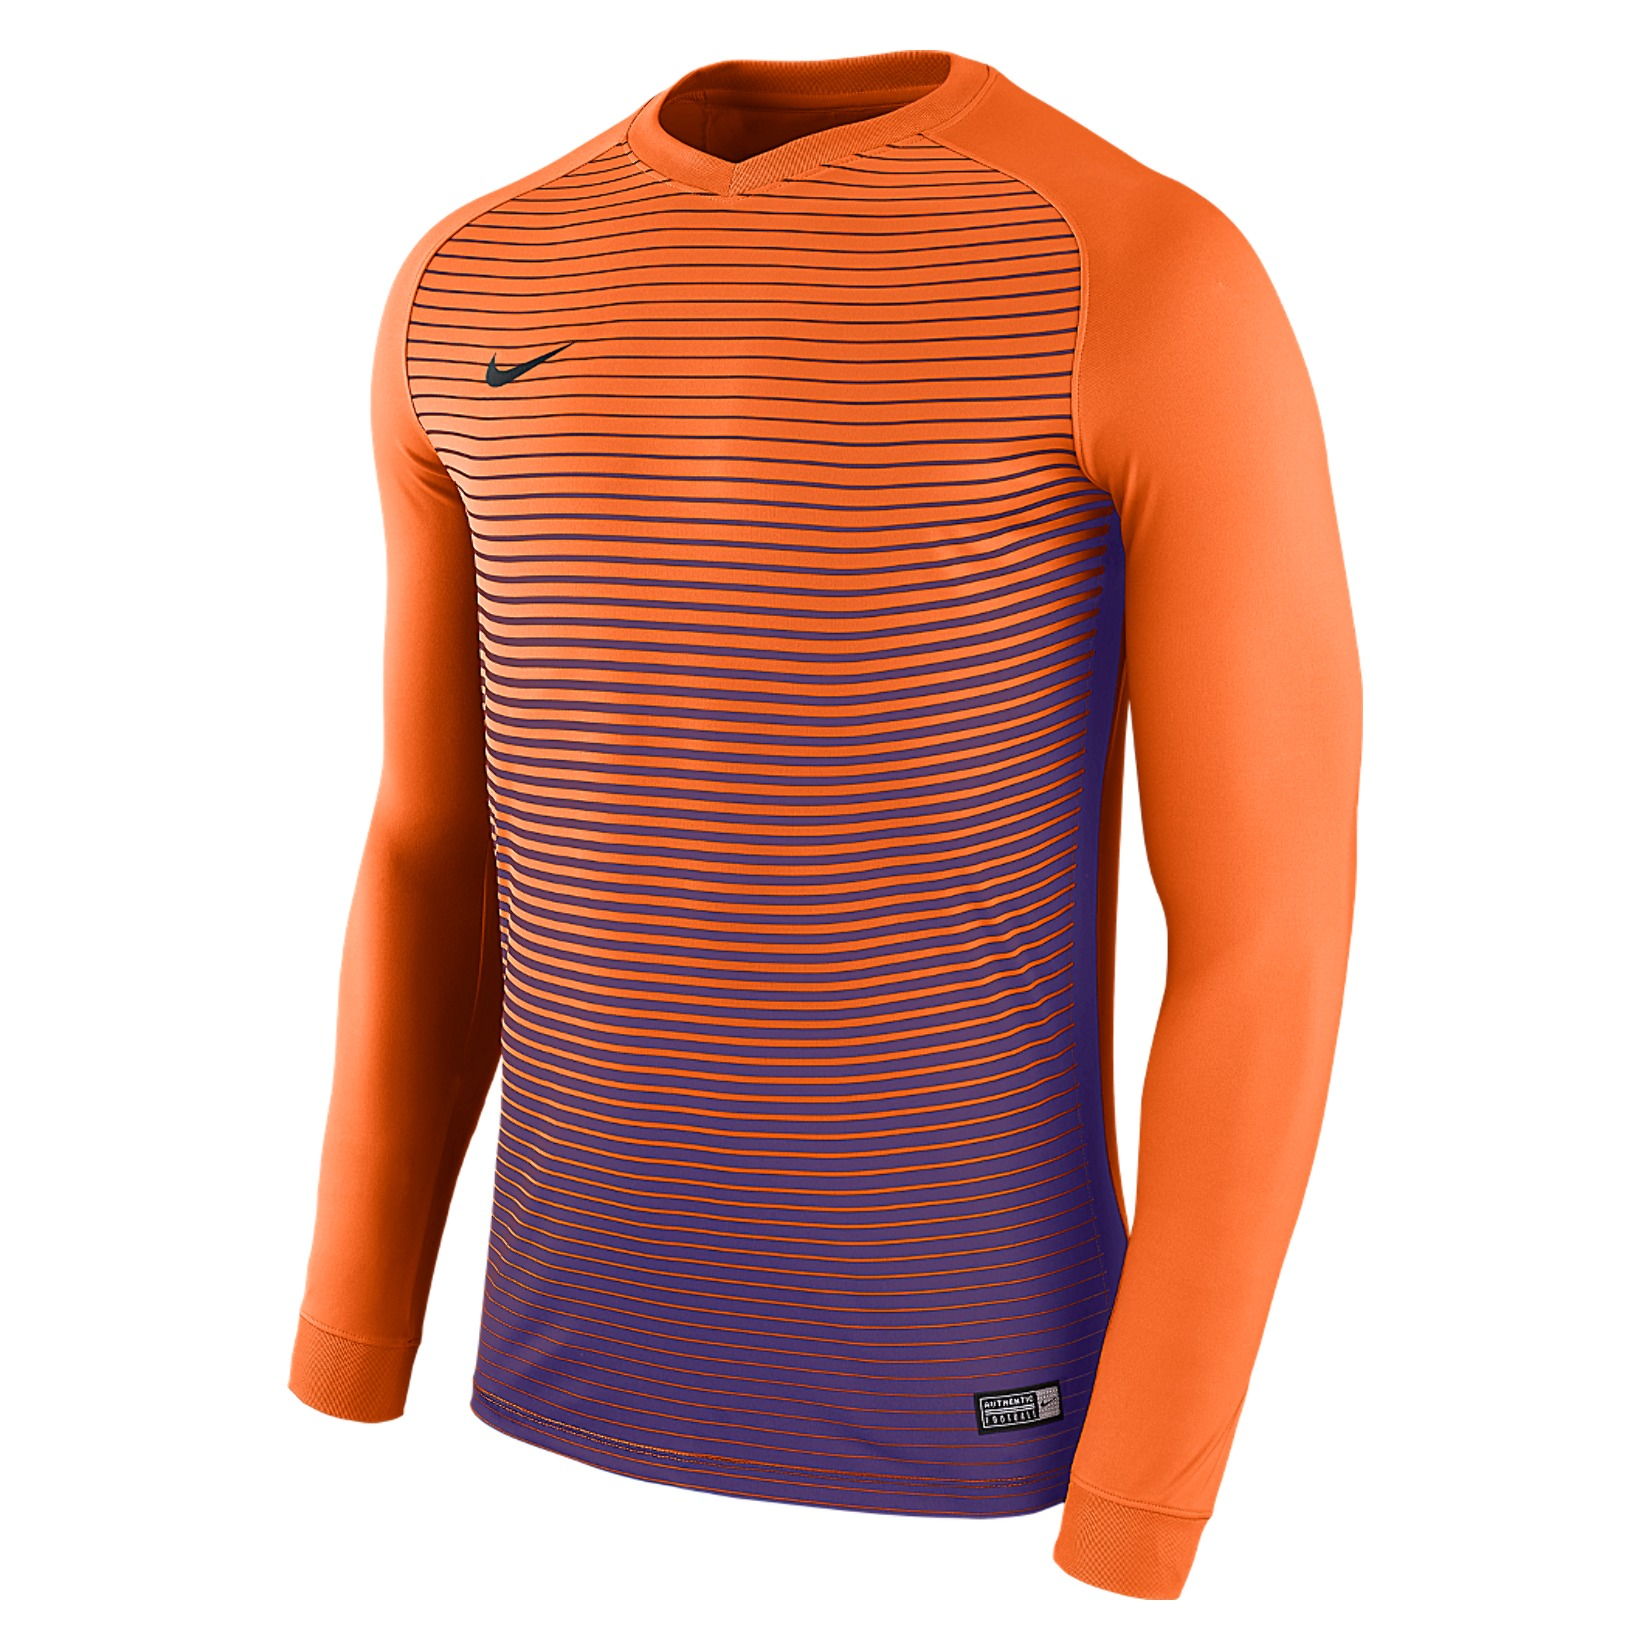 Nike Precision Iv Long Sleeve Football Shirt Safety Orange-Court Purple-Court Purple-Black